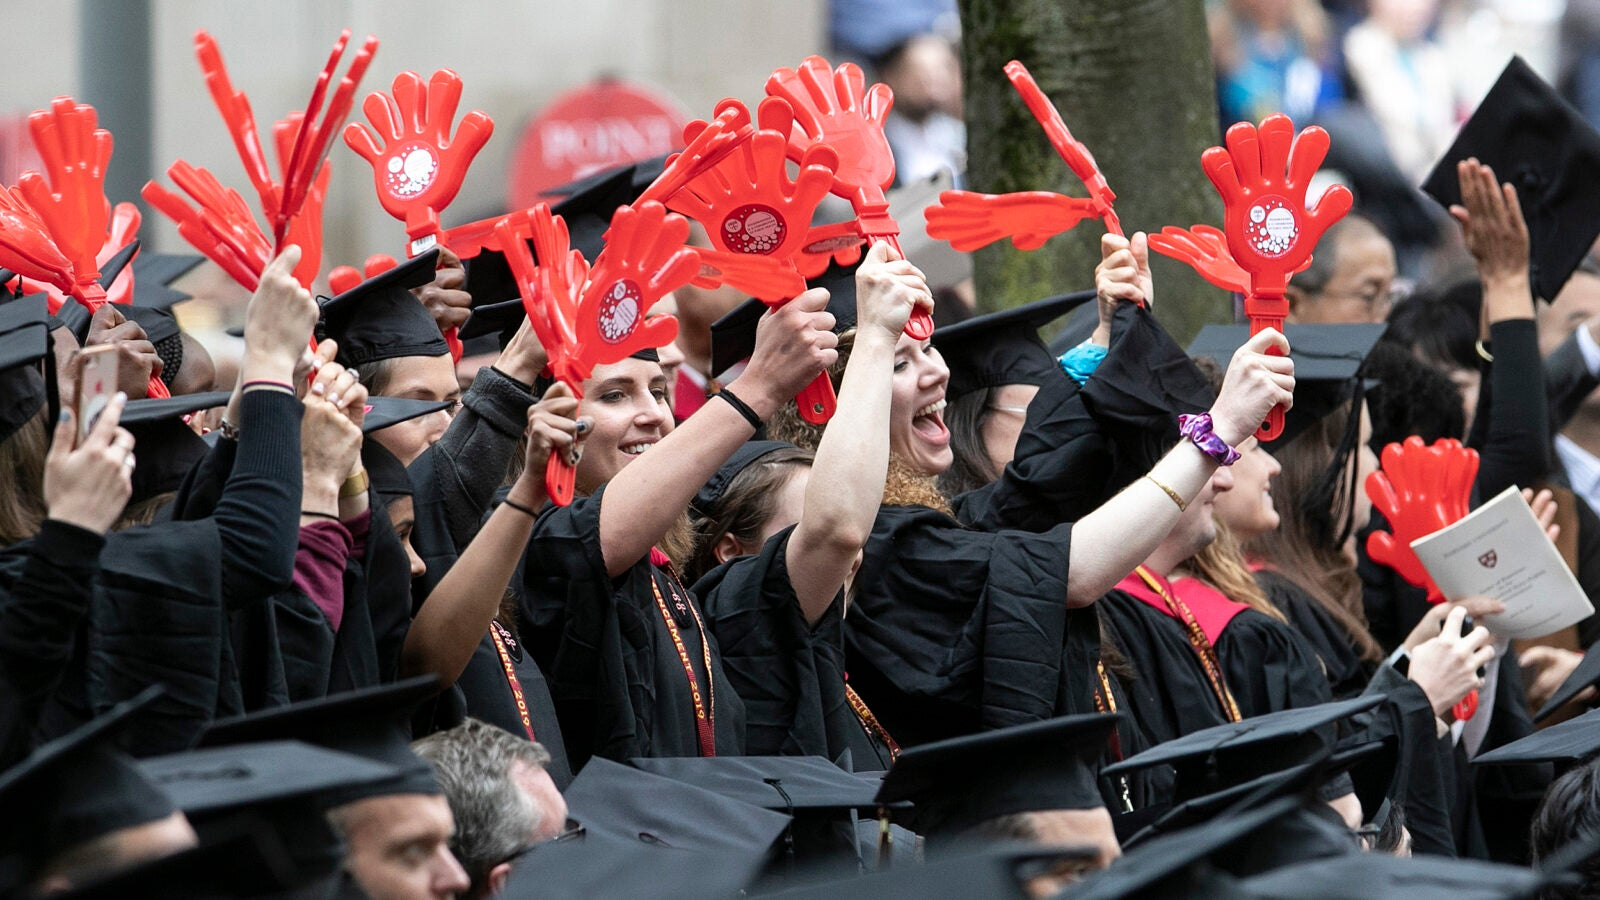 Harvard T.H. Chan School of Public Health graduates wave with red plastic clappers